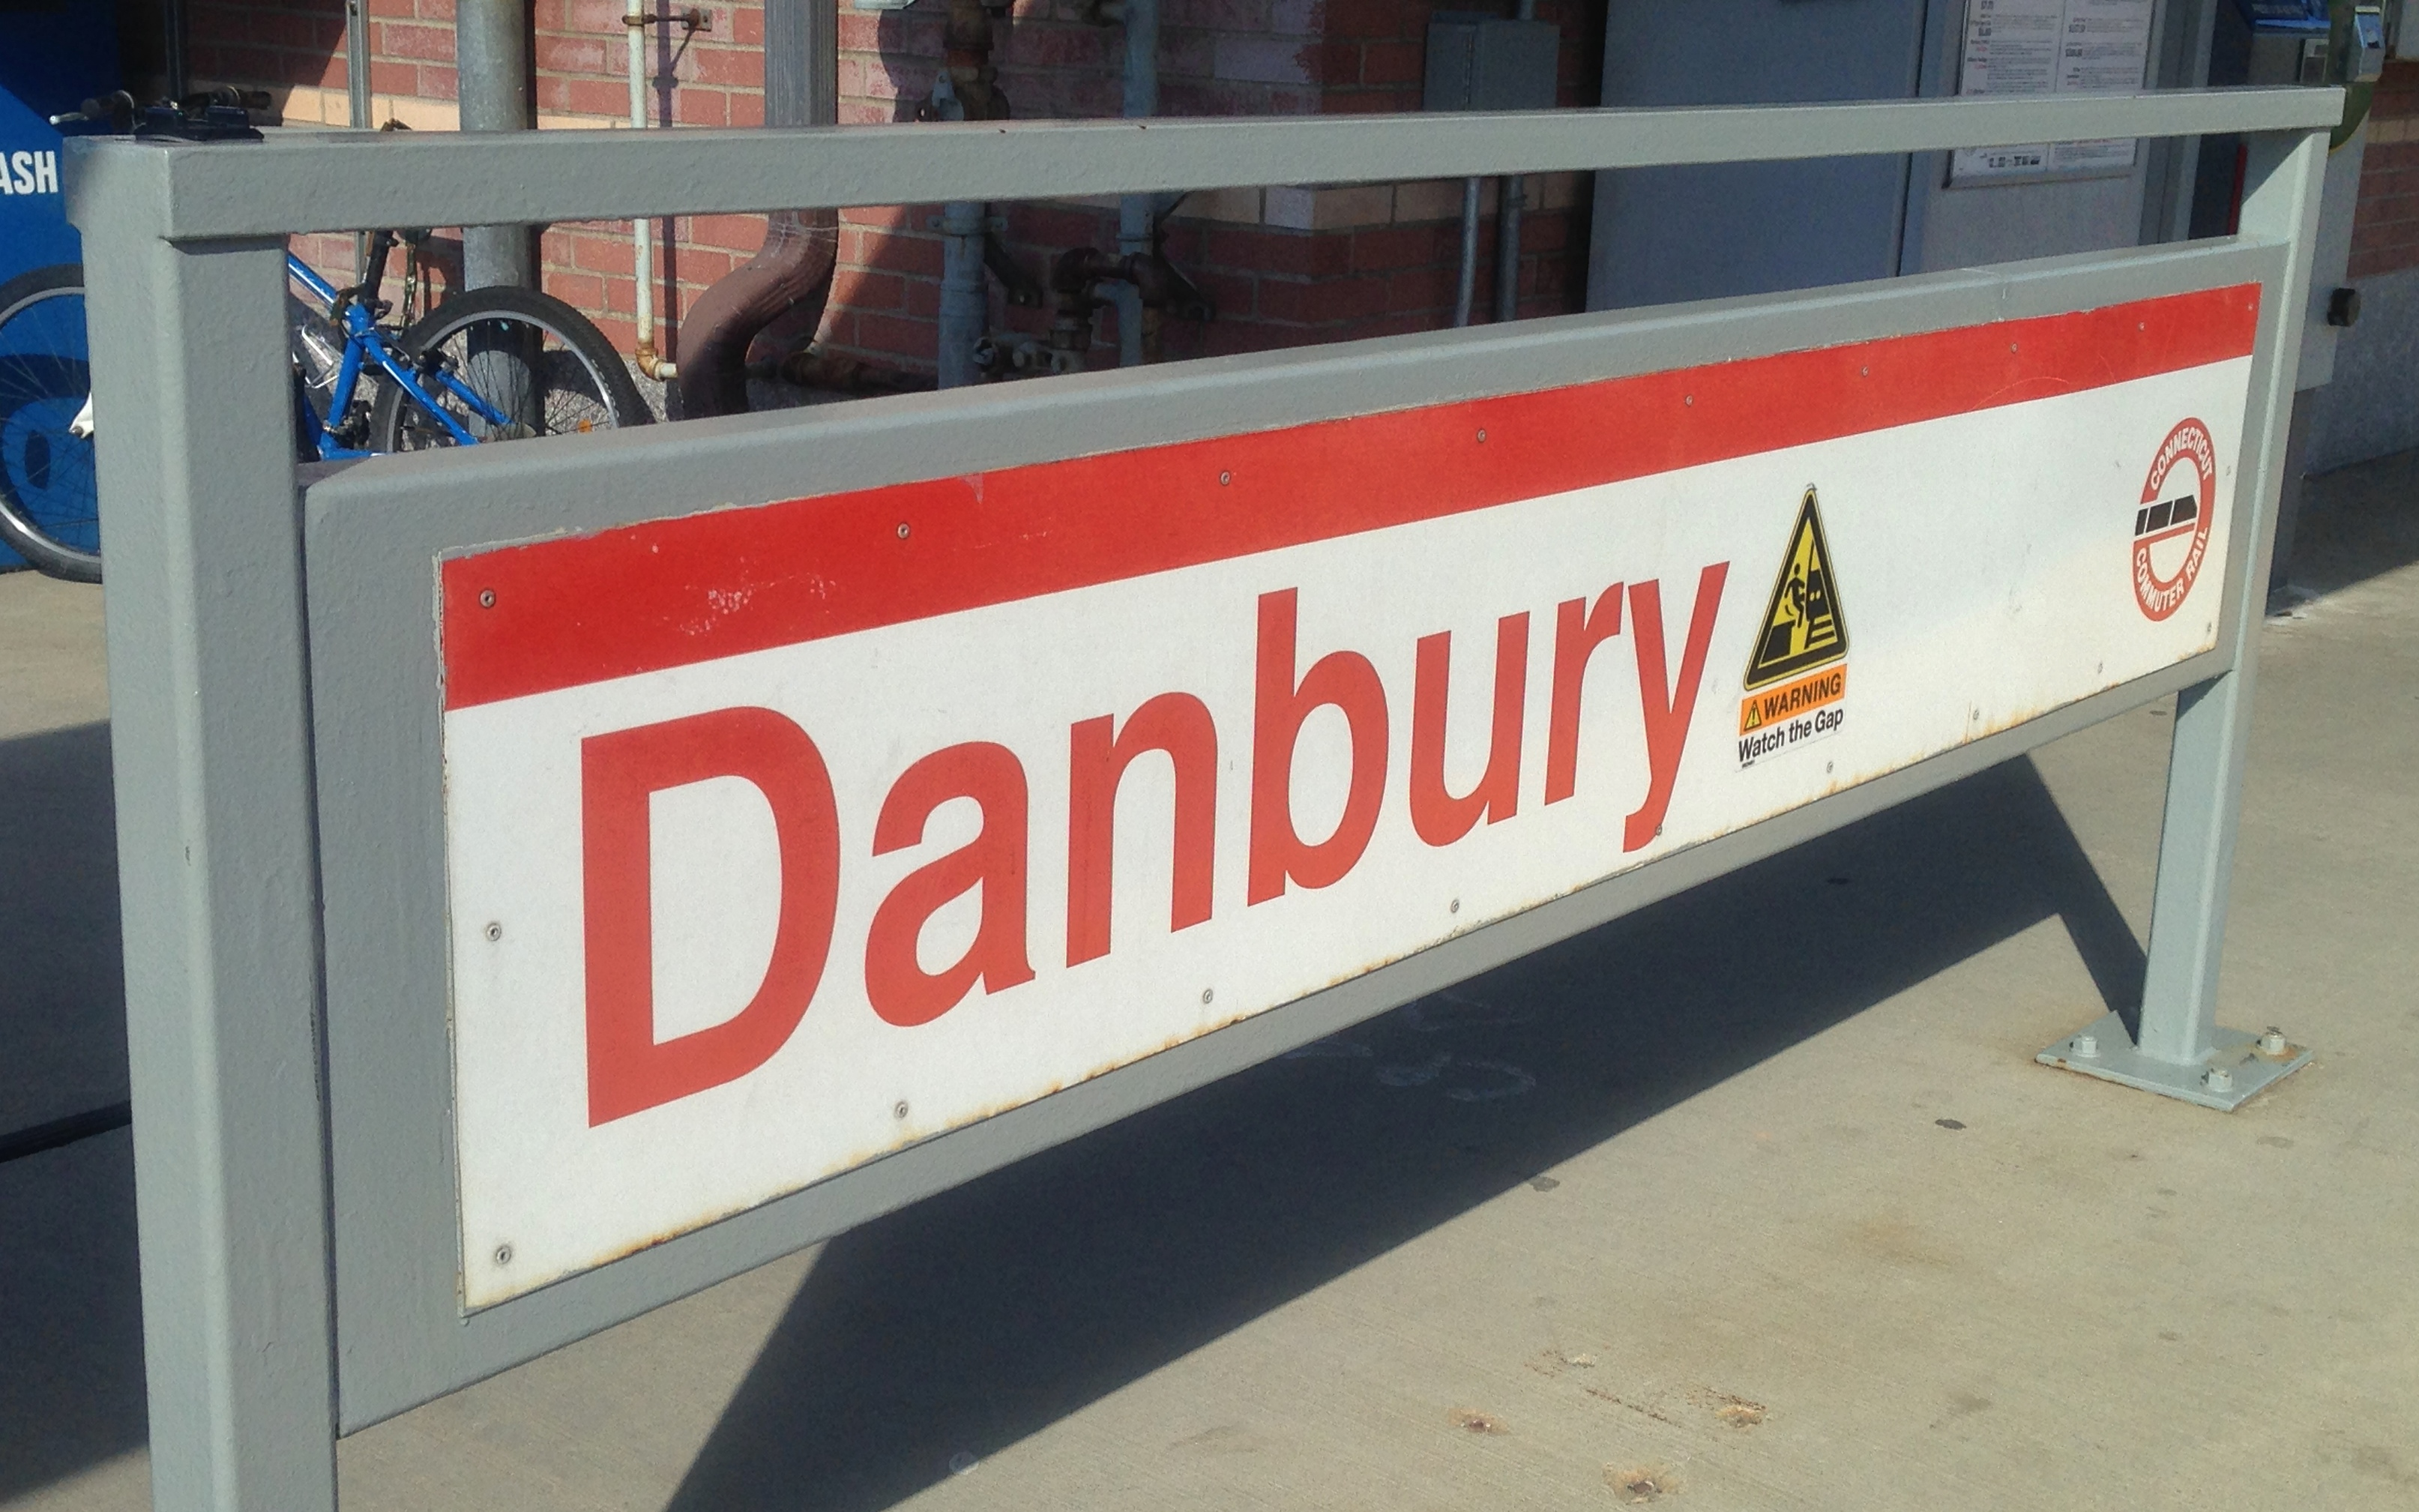 Metro-North has been providing off-peak and weekend busing for Danbury Branch customers since March 1.